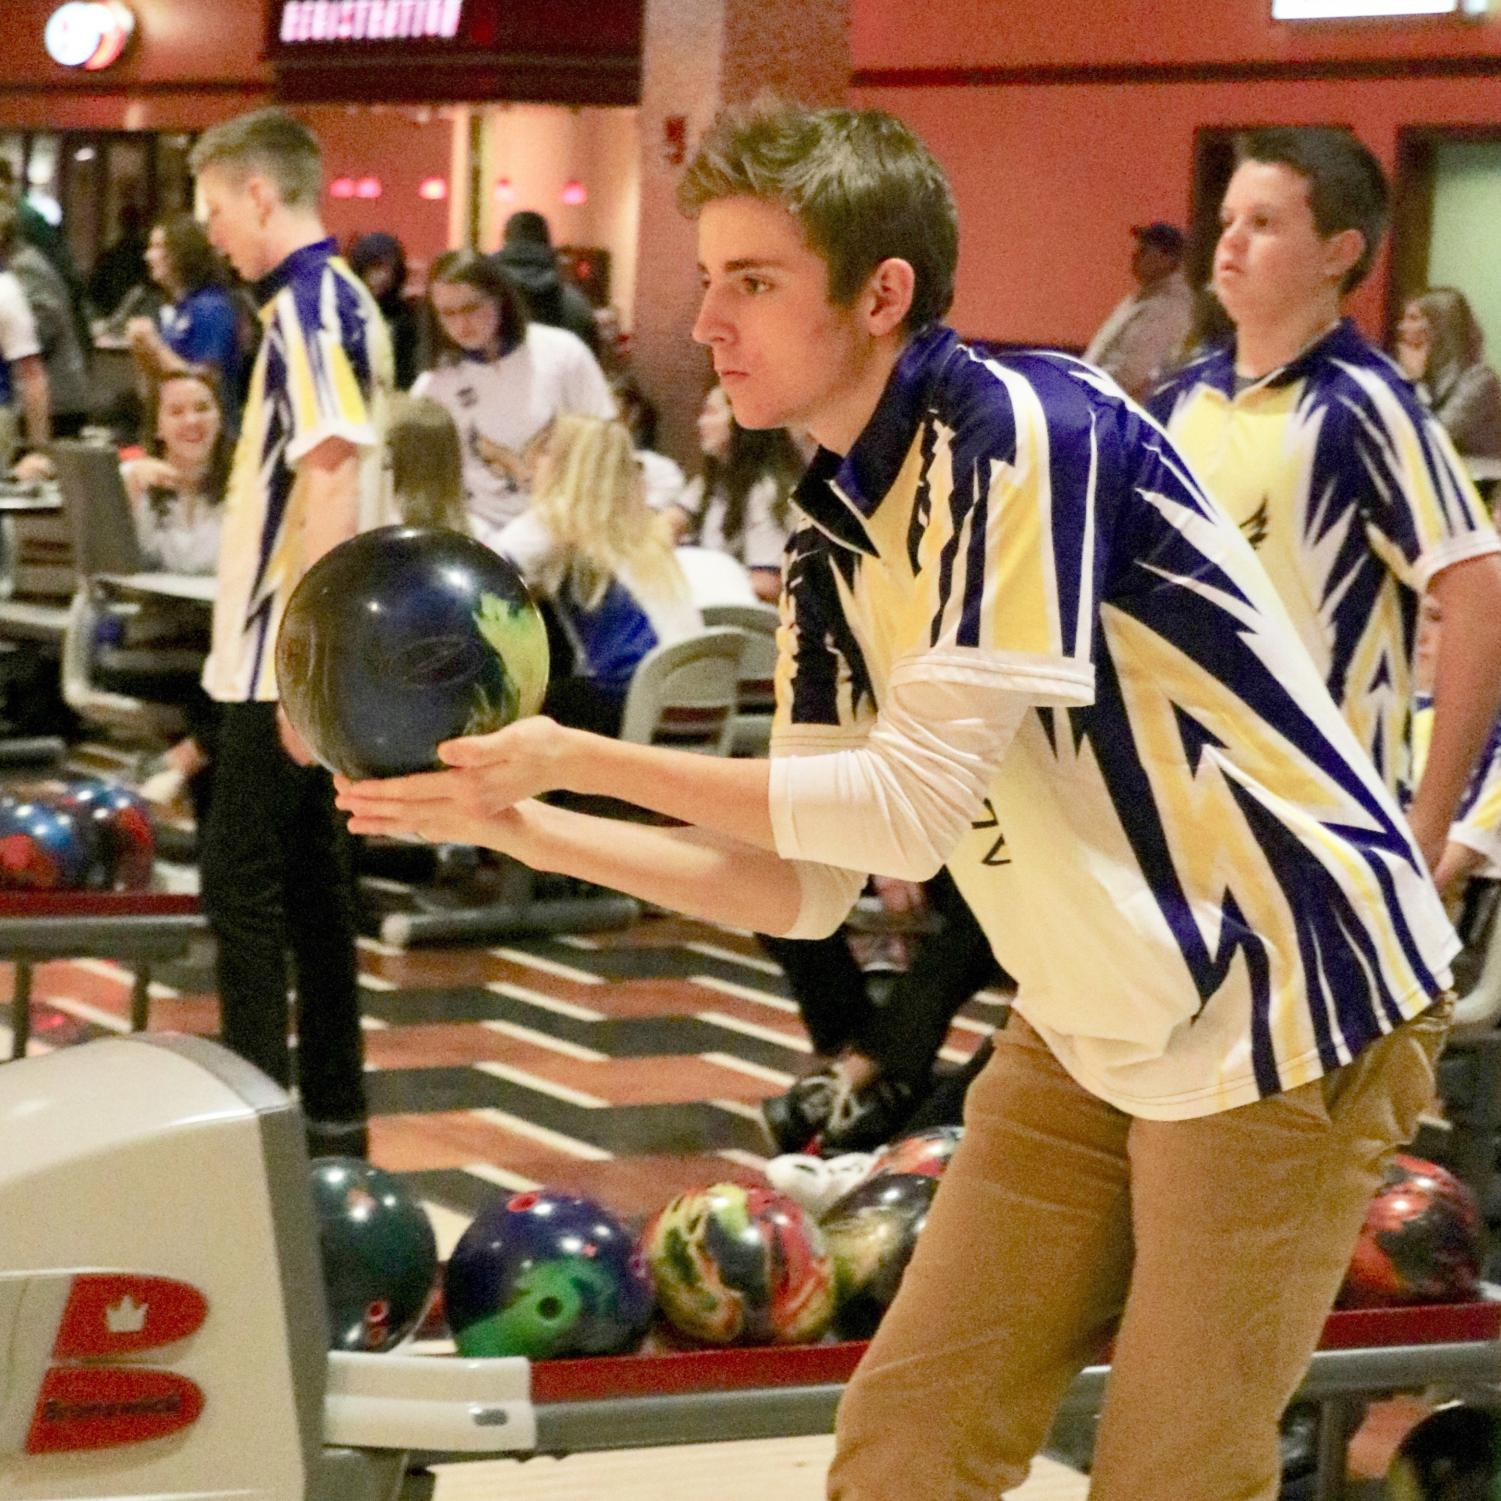 Mitchell Walz '19, prepares to launch the ball down the lane during bowling practice after school at Cherry Lanes.